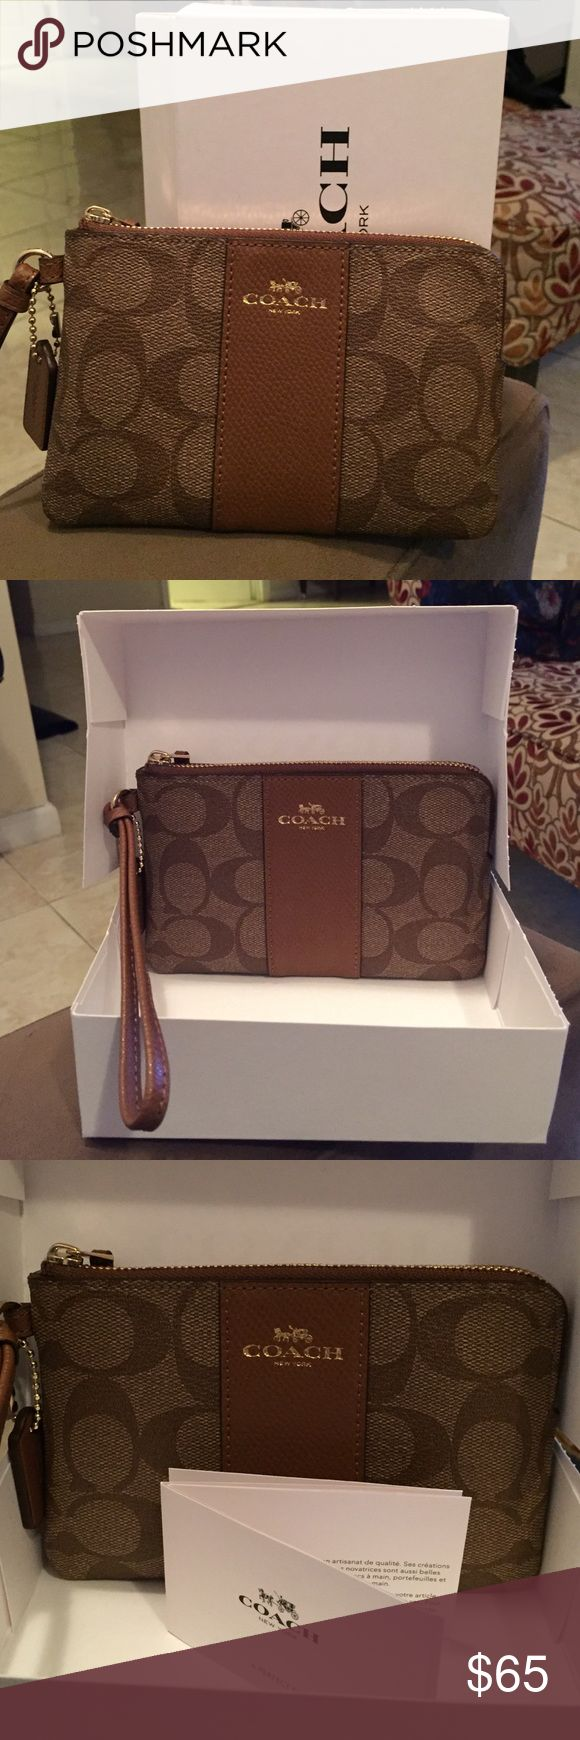 Coach wristlet New with tags (except price tag) Coach wristlet. Bags Clutches & Wristlets